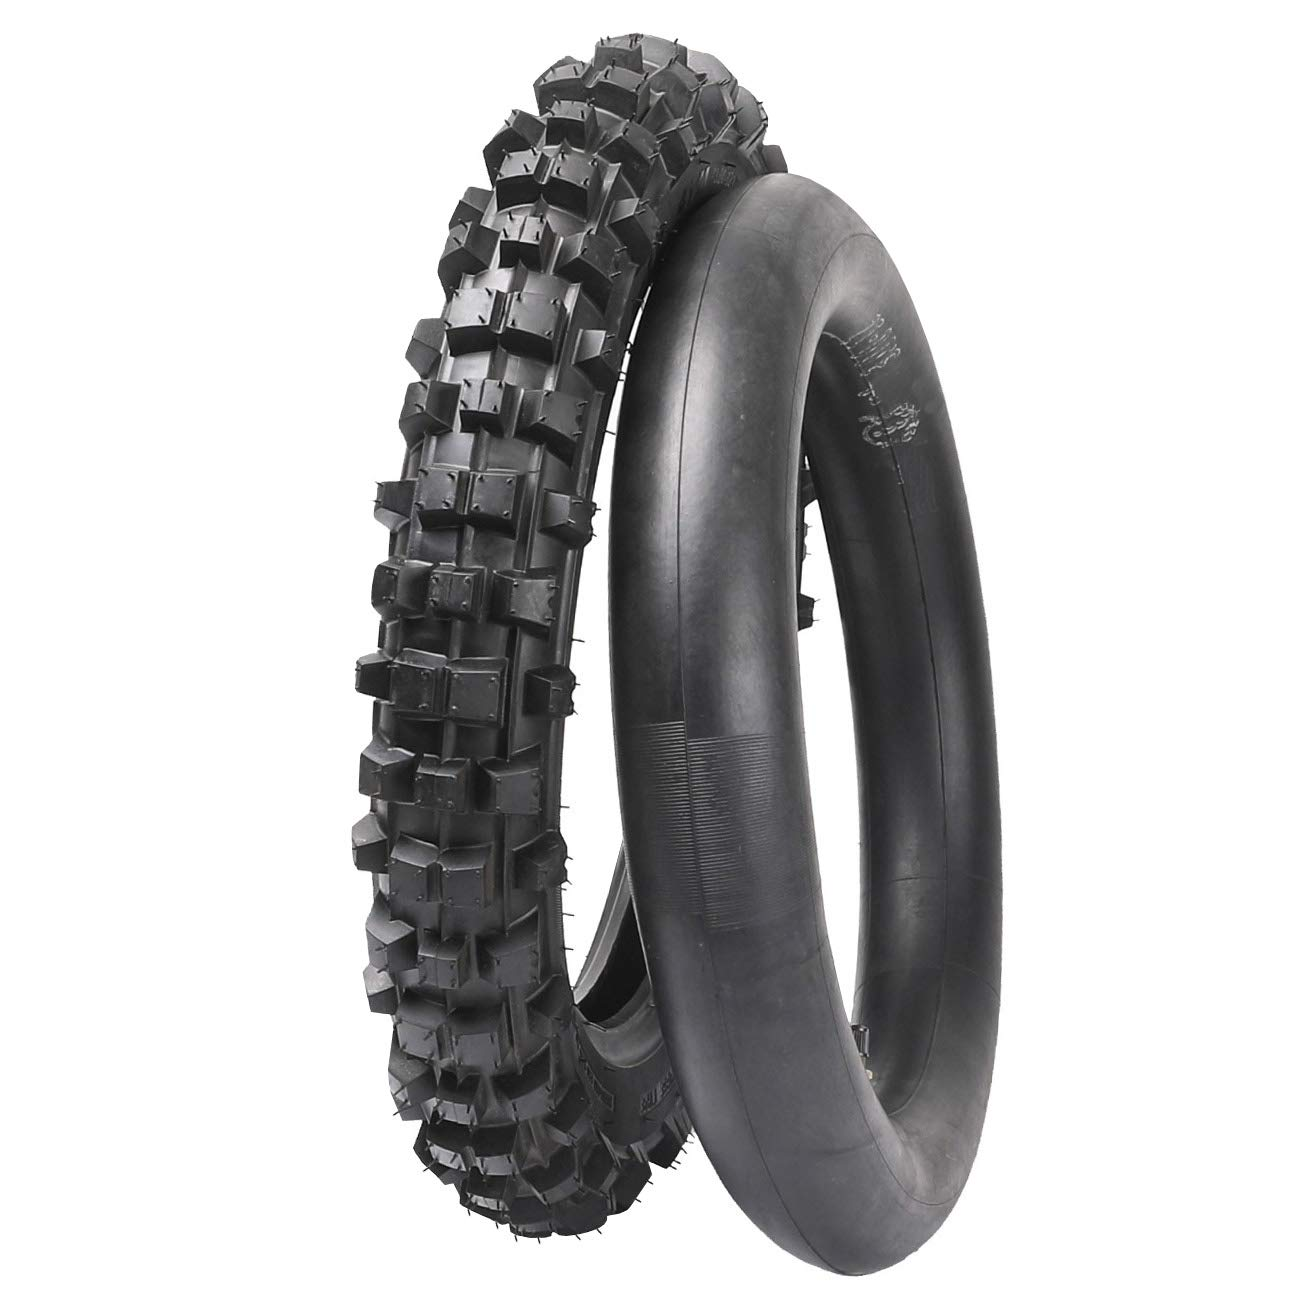 WPHMOTO 12'' 3.00-12 Tire With Tube for XR CRF 70 PW80 KLX110 Street Super Motard Mopeo(80/100-12)